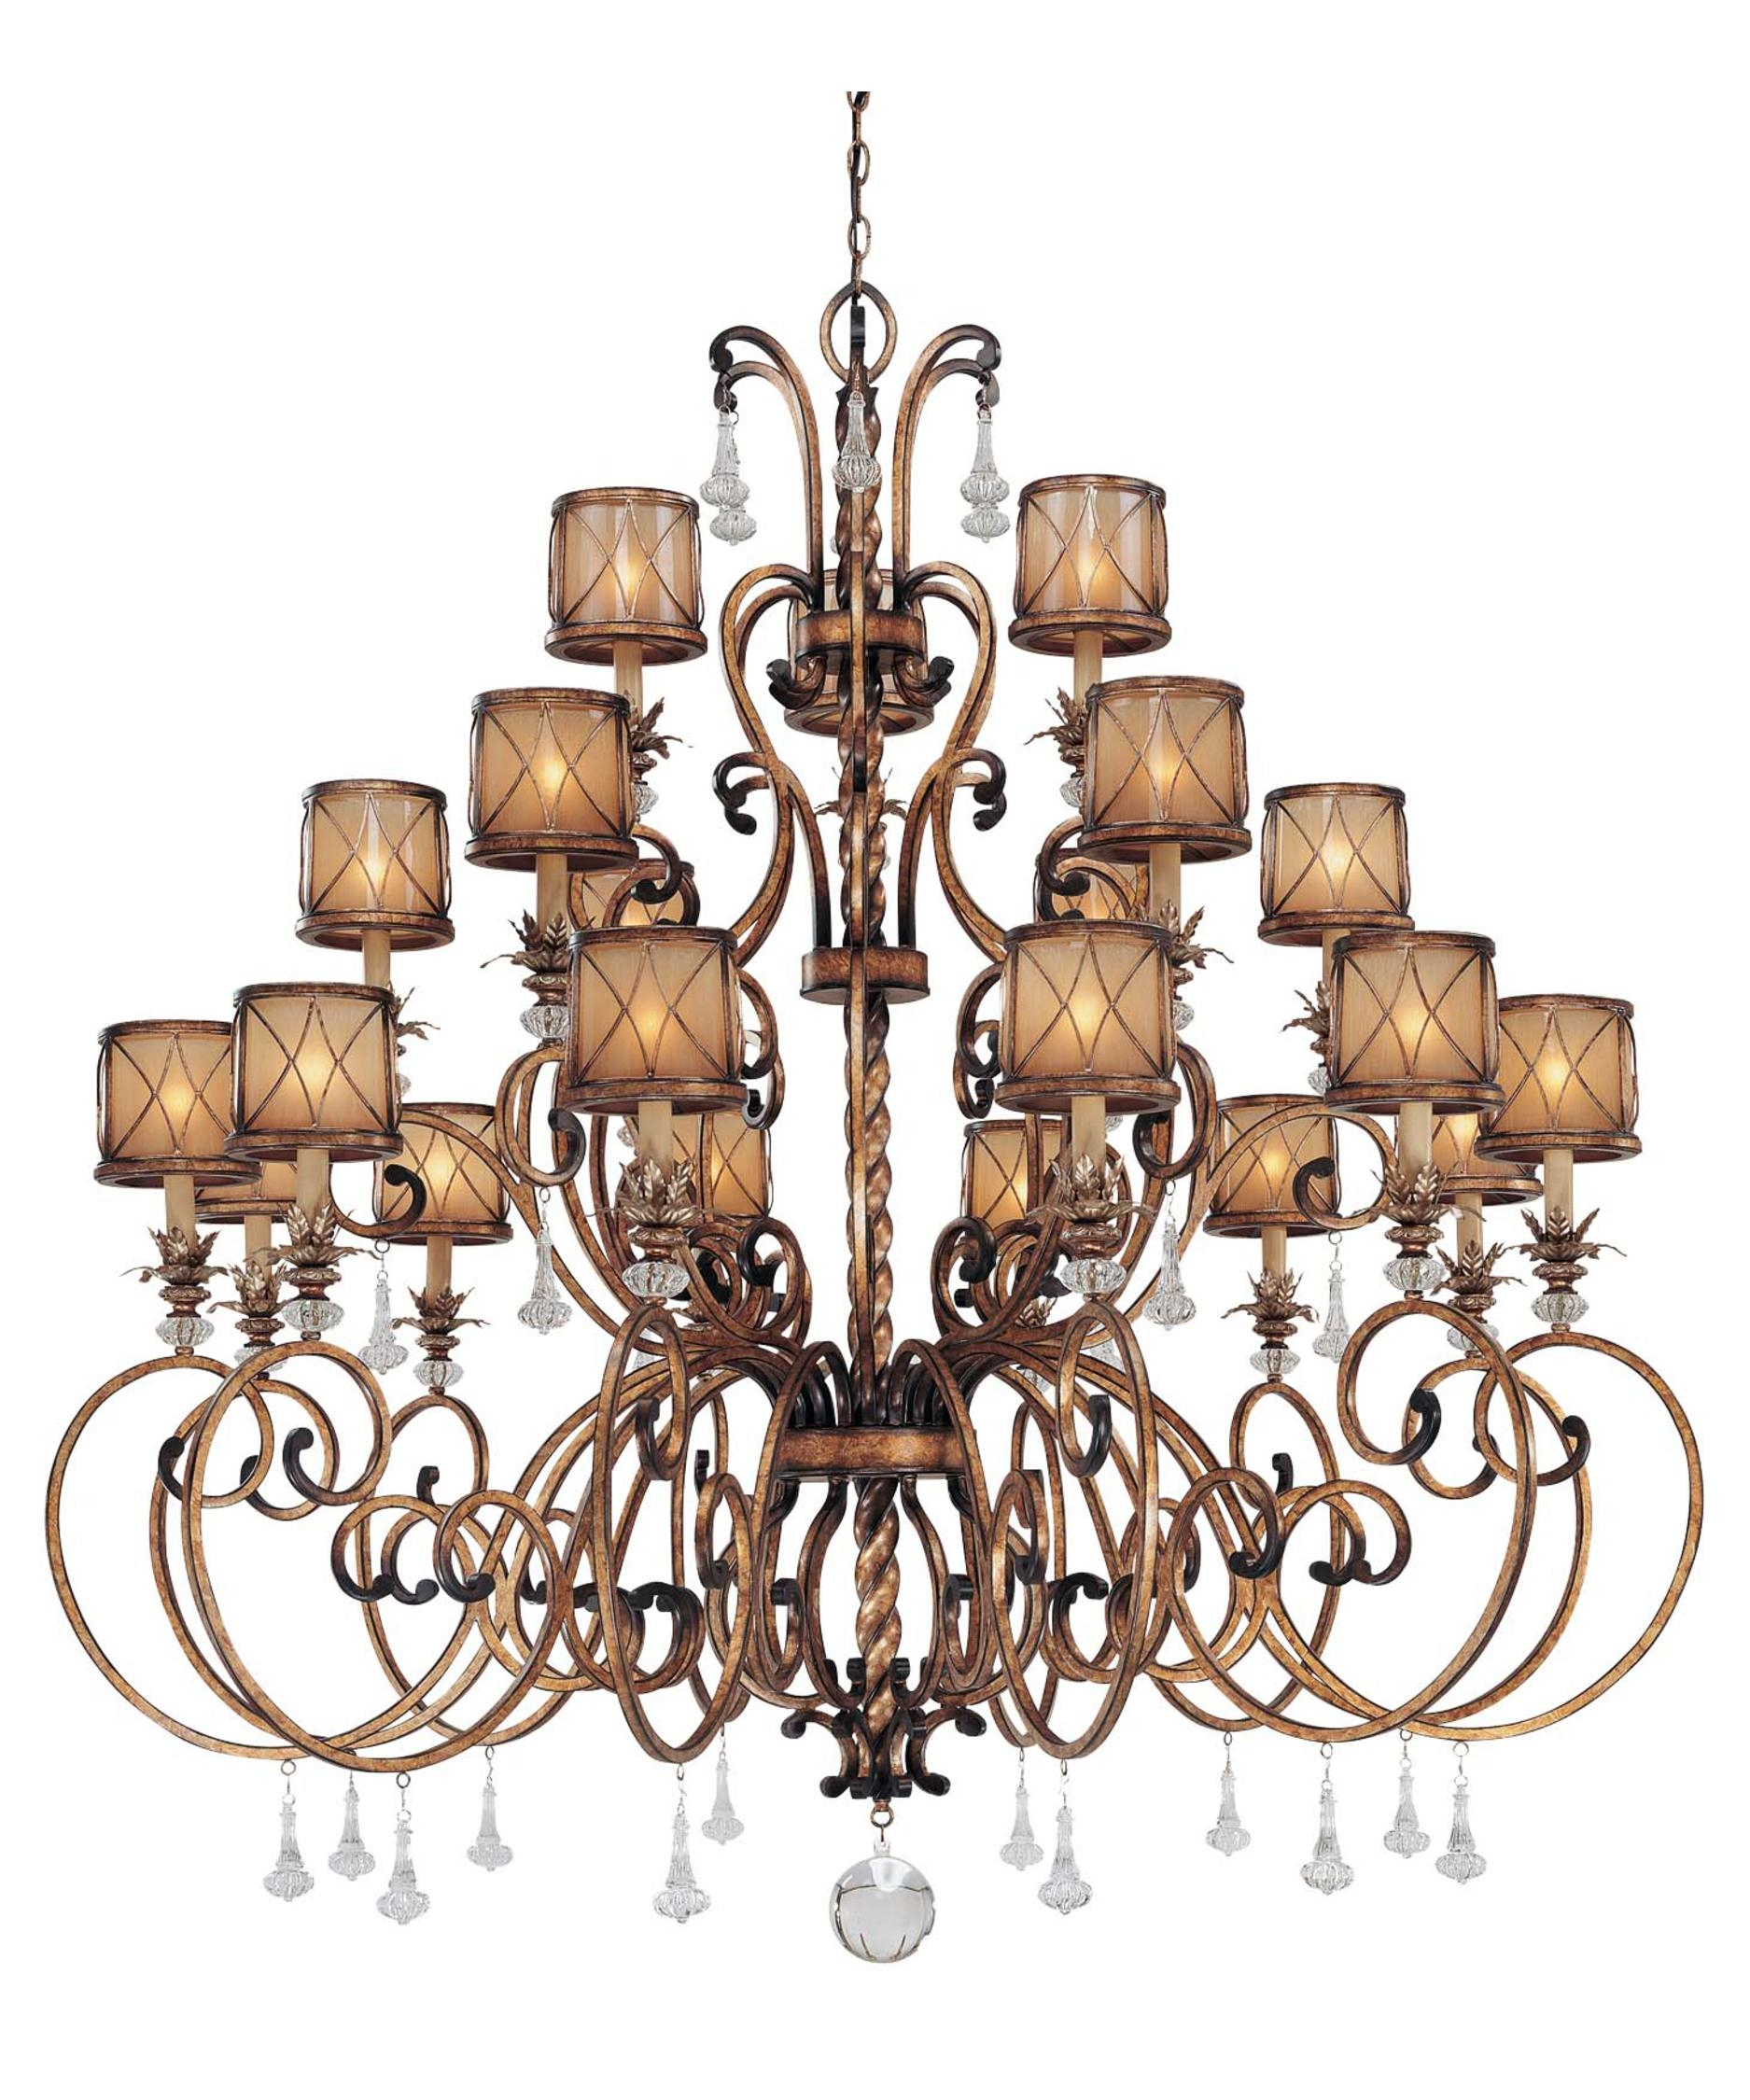 Minka Lavery 4759 Aston Court 59 Inch Wide 21 Light Chandelier Intended For Large Bronze Chandelier (View 2 of 15)